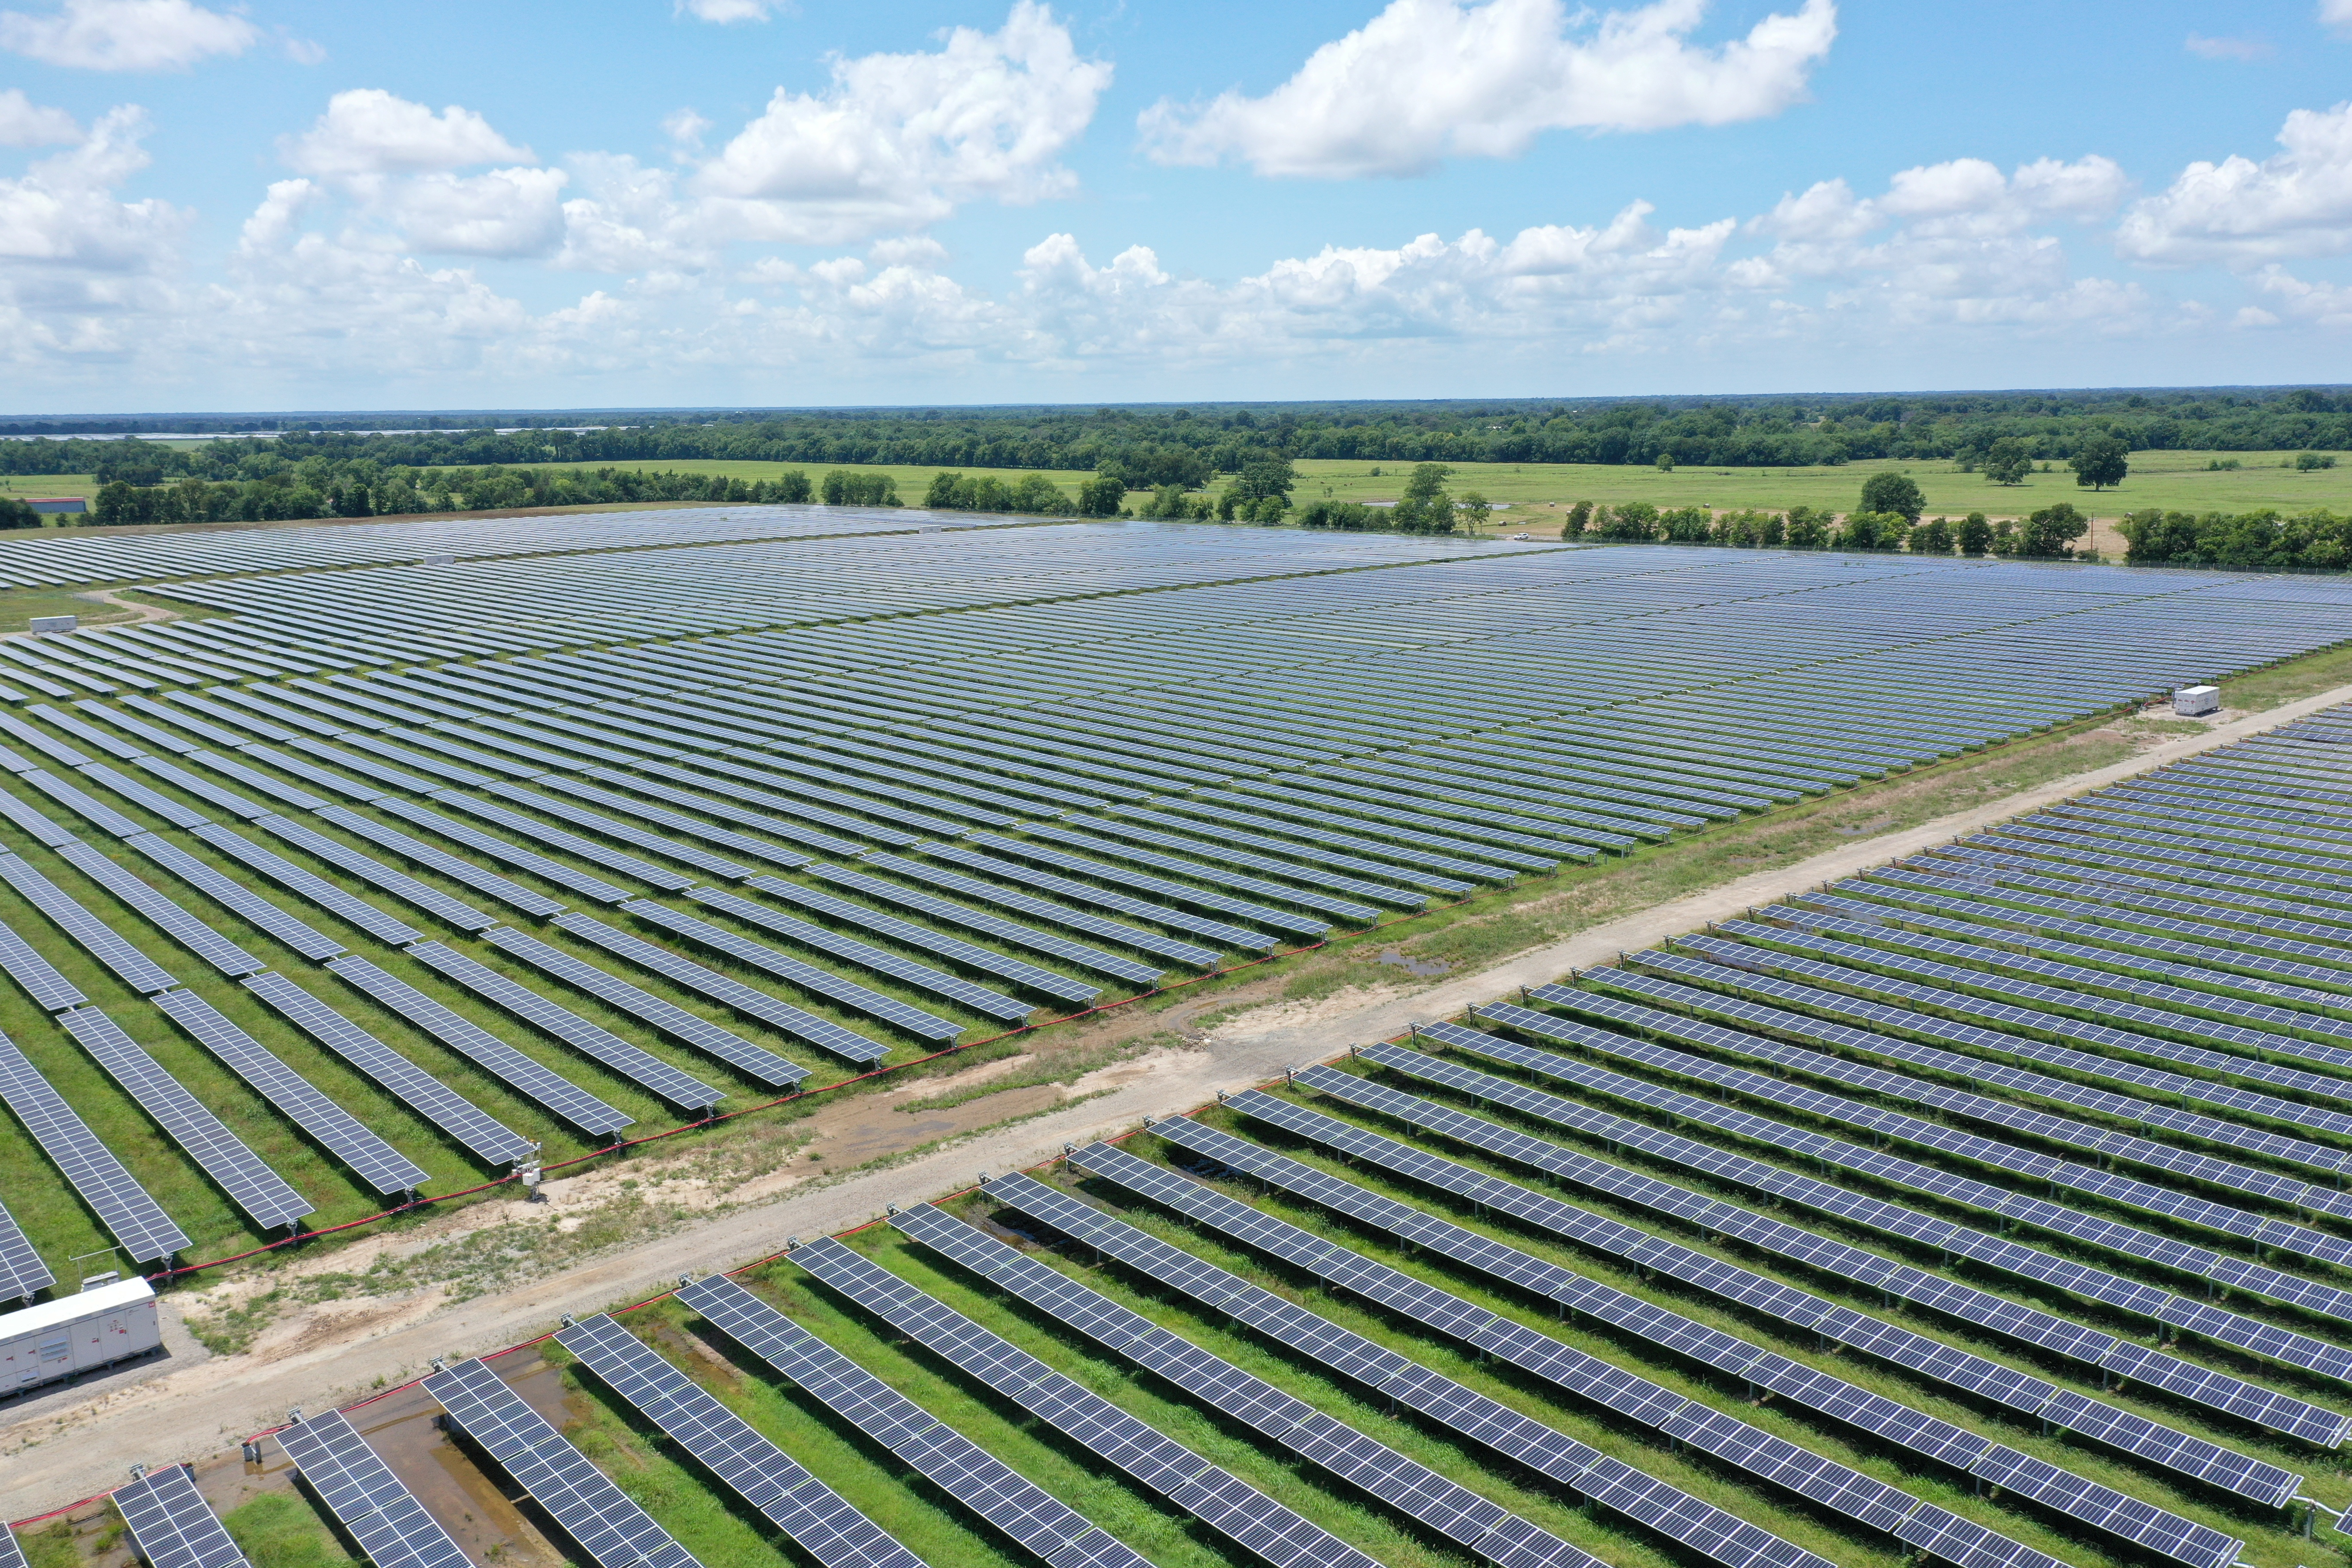 Solar panels are seen in this drone photo at the Impact solar facility in Deport, Texas, U.S., July 15, 2021.   REUTERS/Drone Base